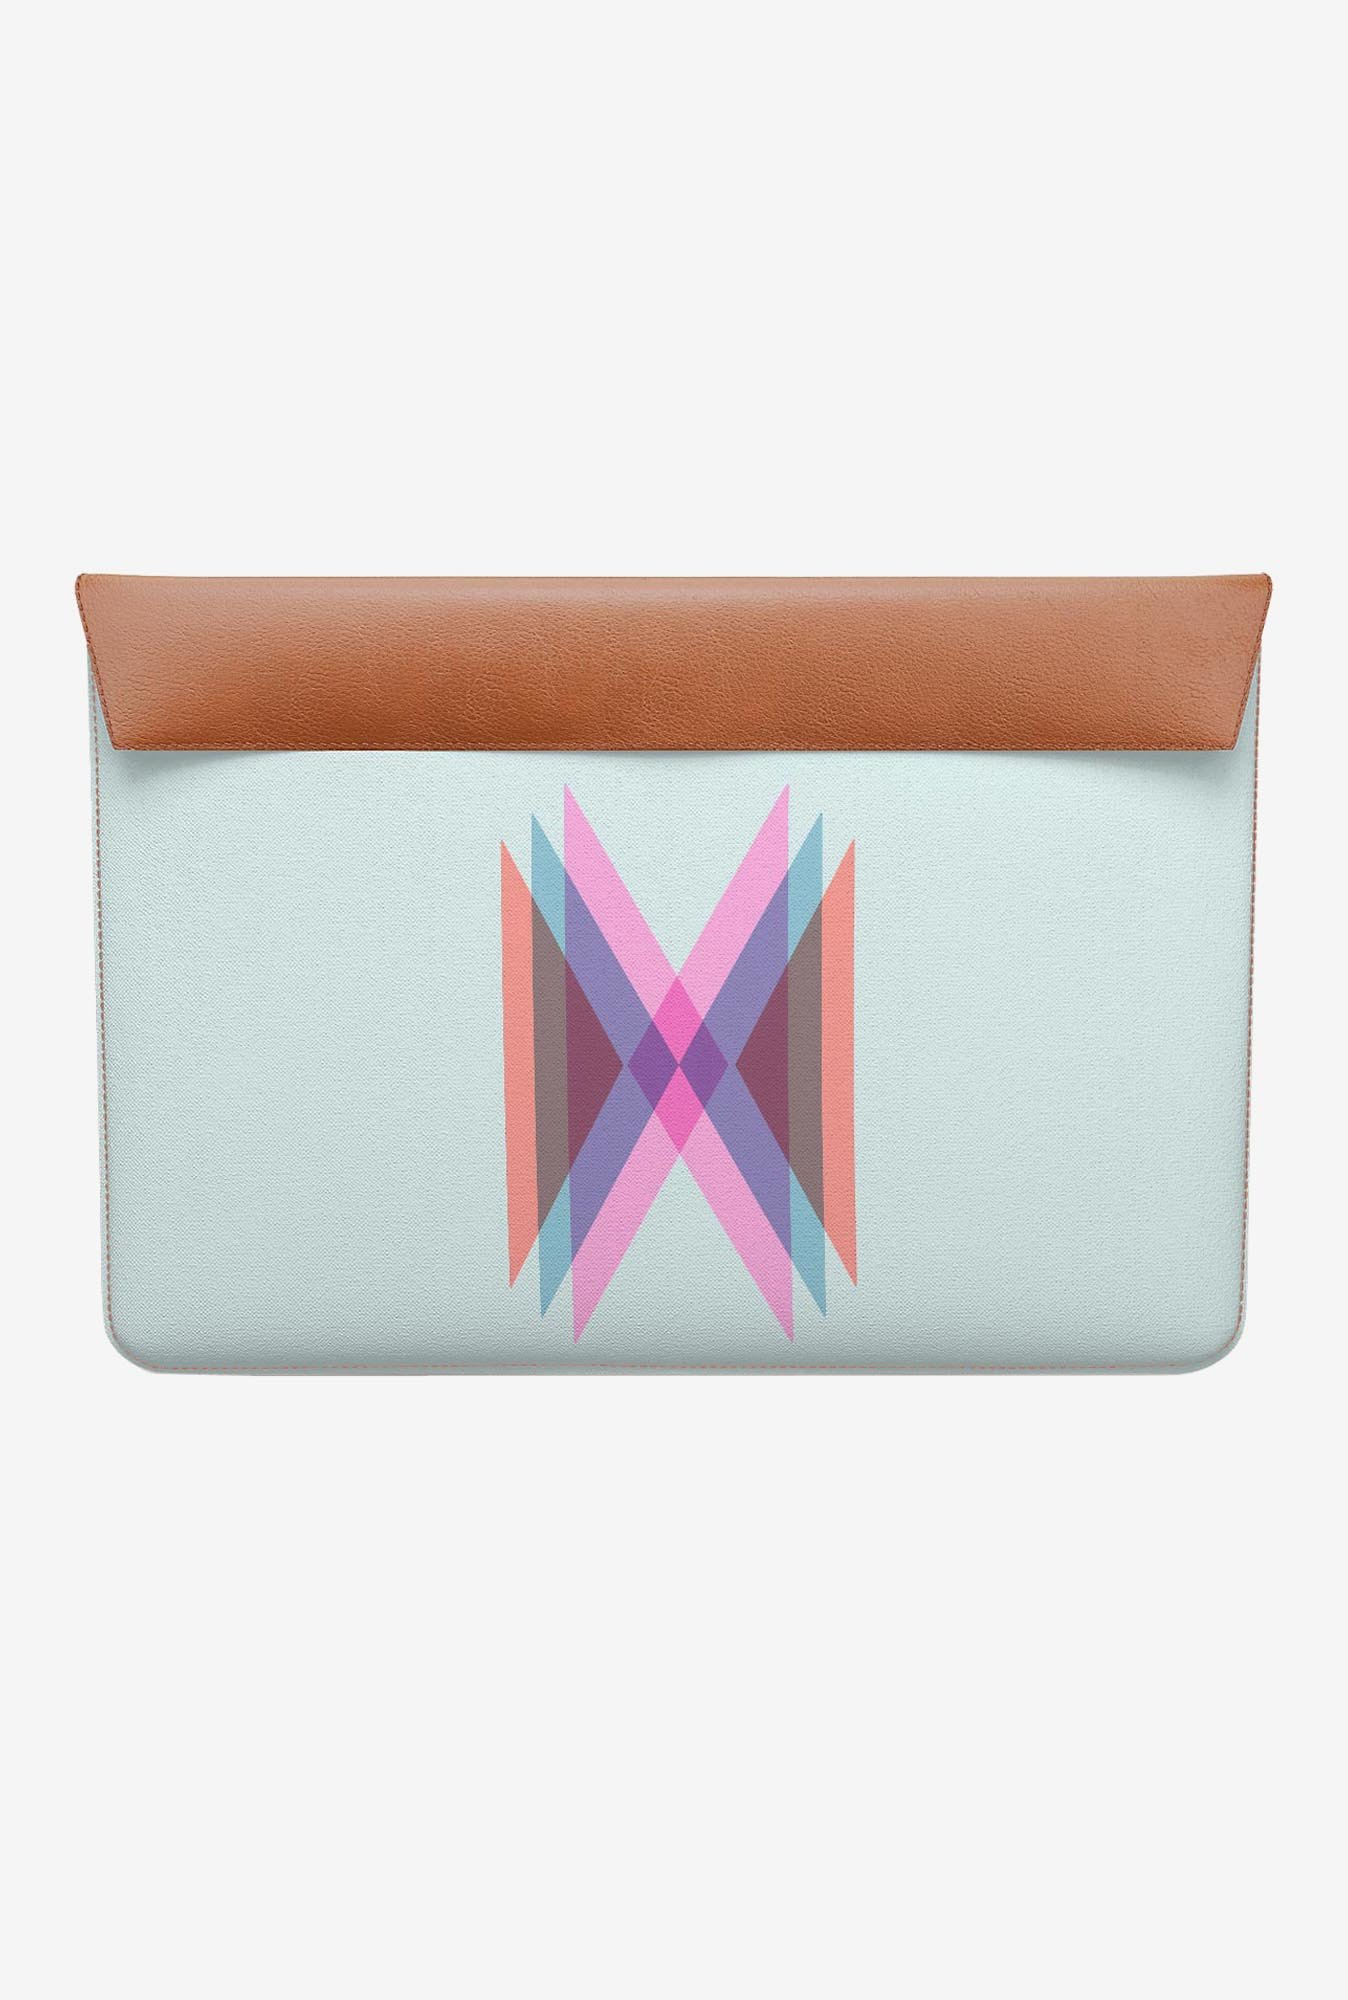 DailyObjects Stylised H MacBook 12 Envelope Sleeve